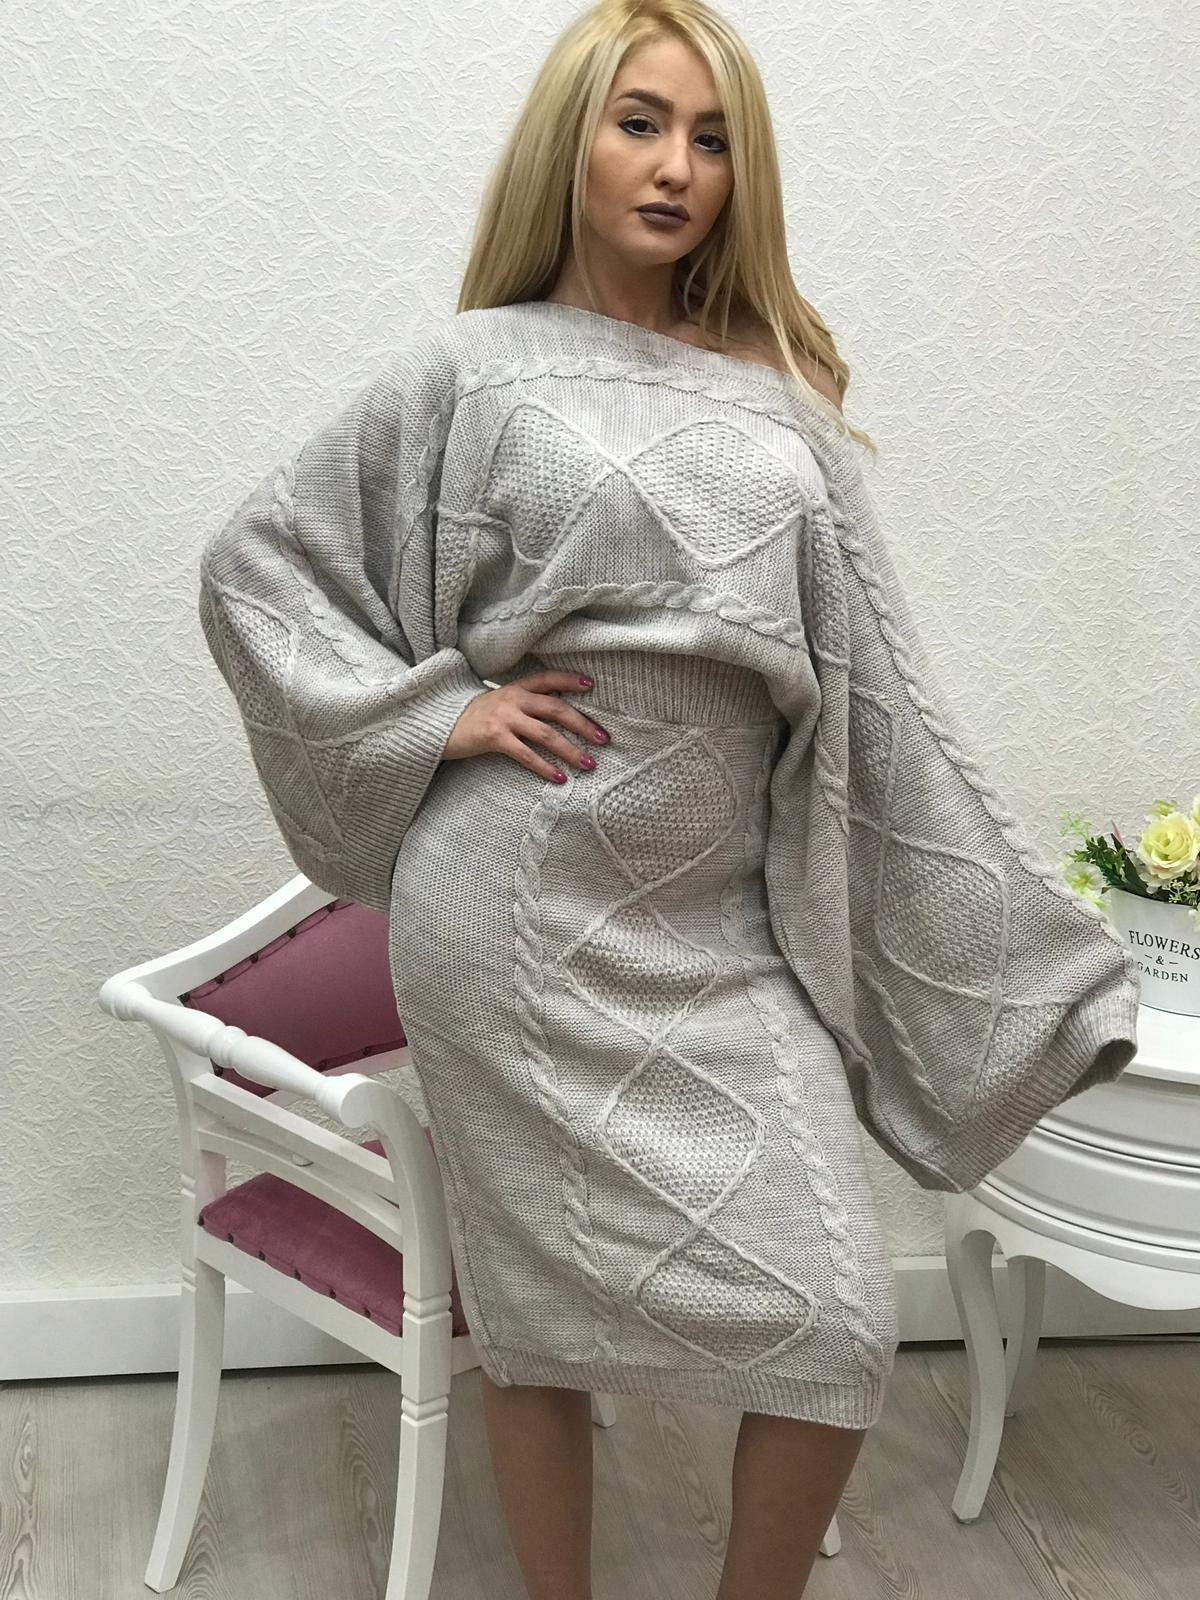 COMPLEU DIN TRICOT BY FASHIMO COD : 2633